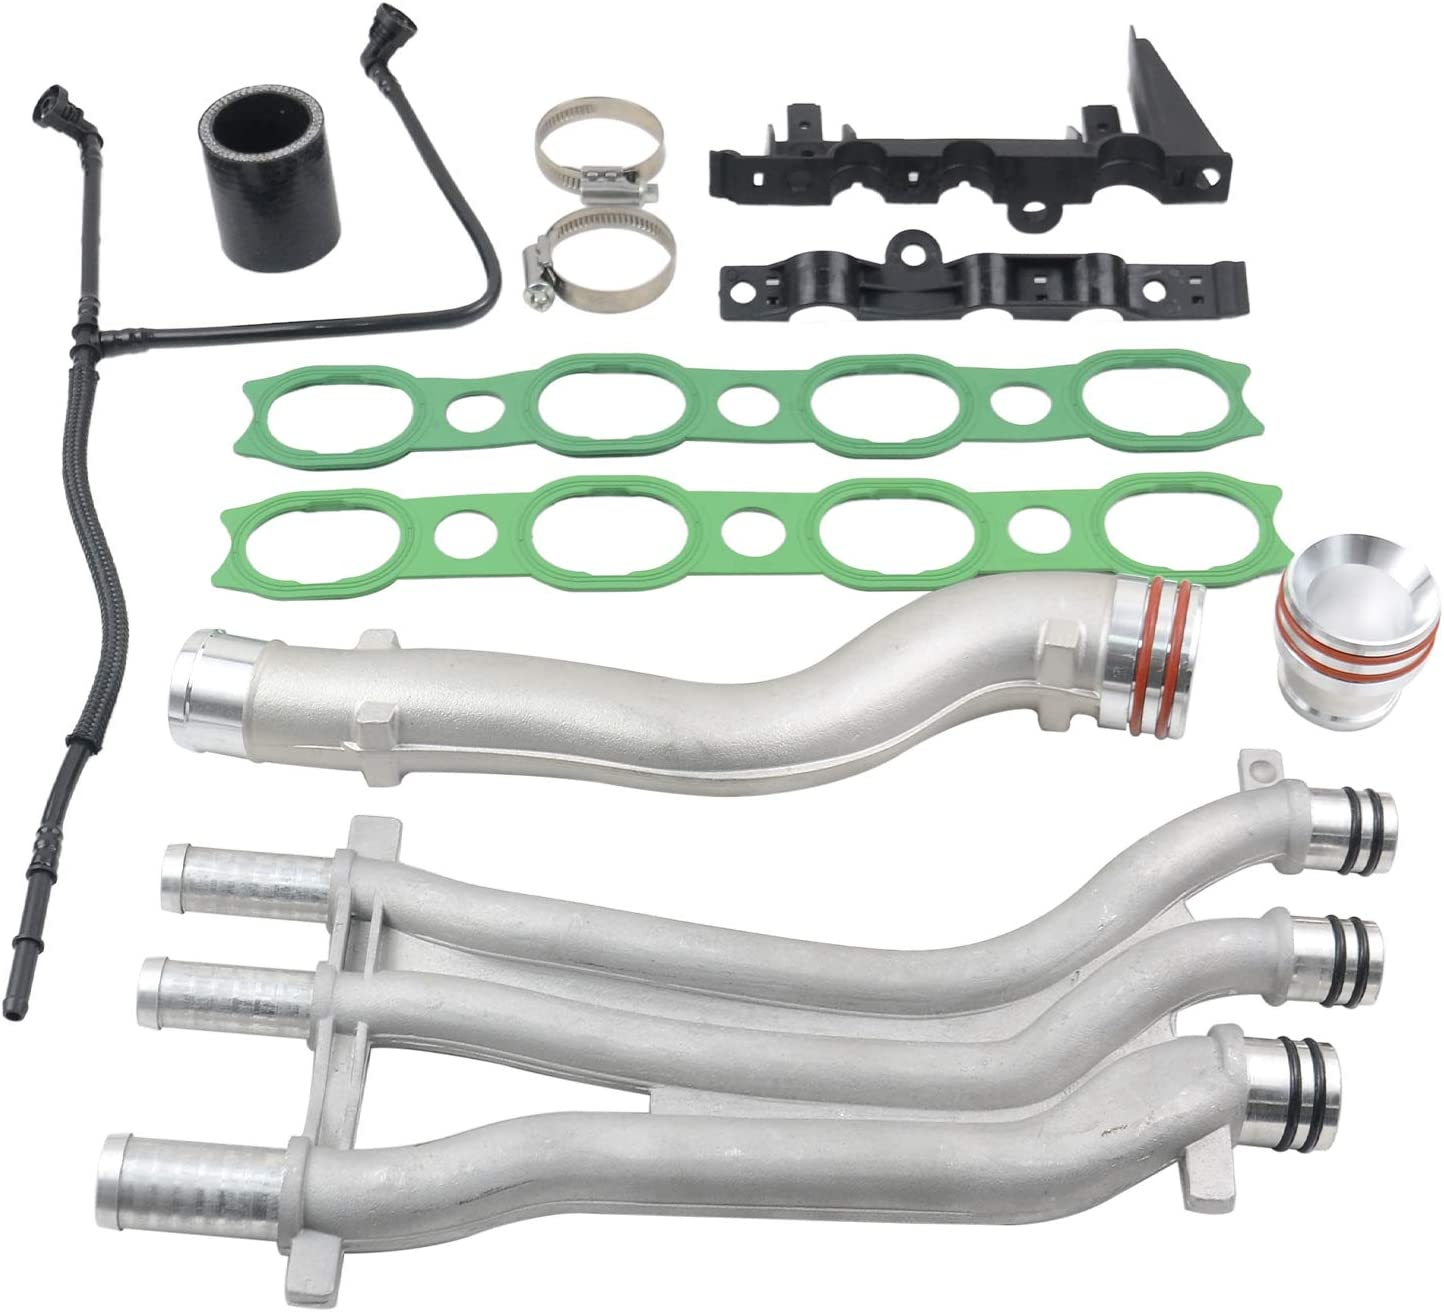 Part# 94810605906 SCSN 10PCS Coolant Pipe Upgrade Repair Kit for 03-06 Cayenne 4.5L V8